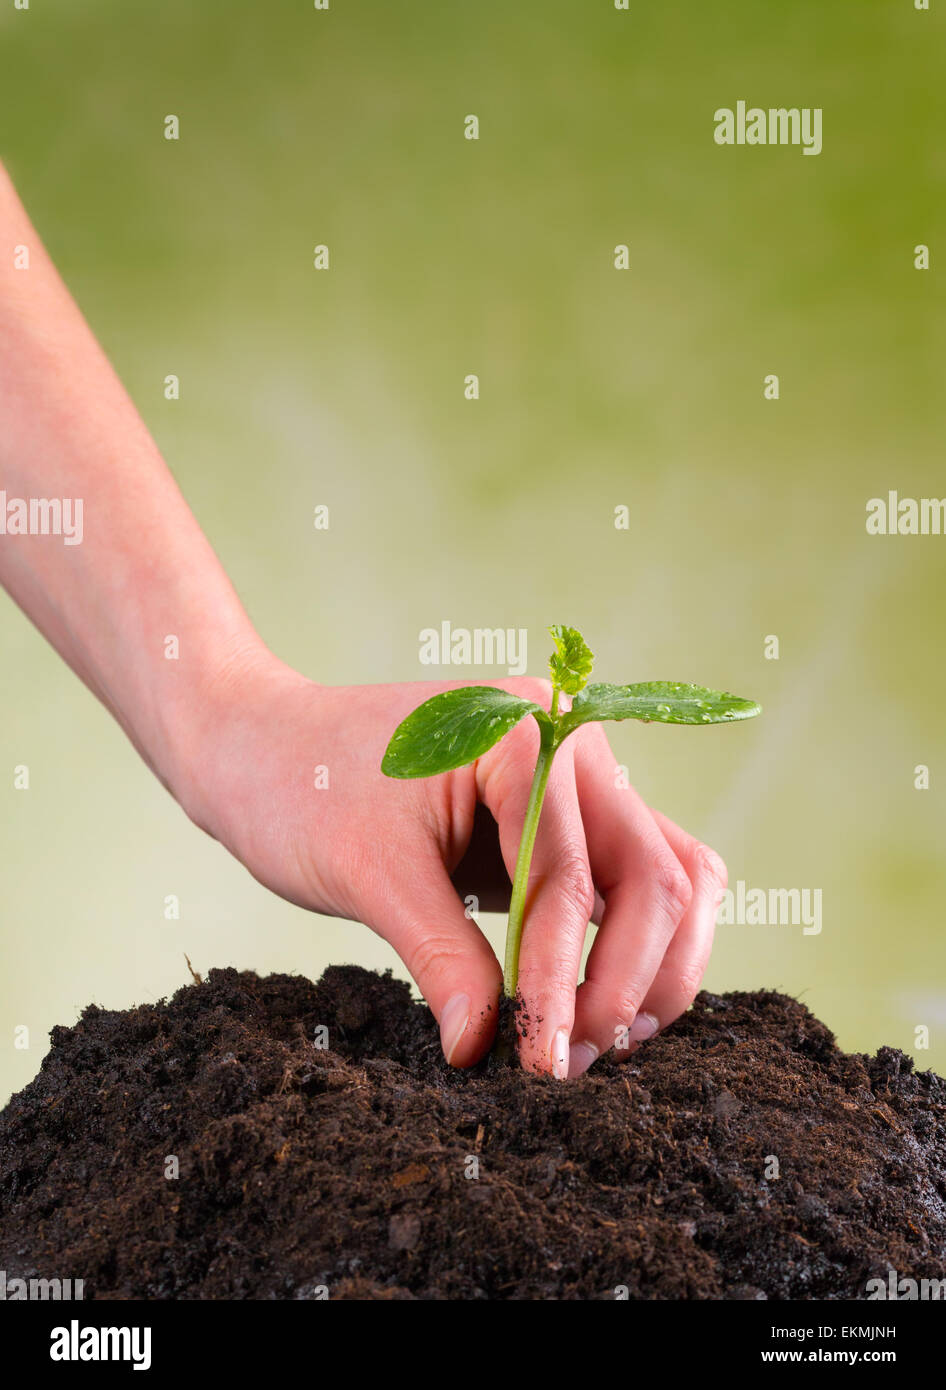 Woman hand seeding young plant into pile of soil - Stock Image